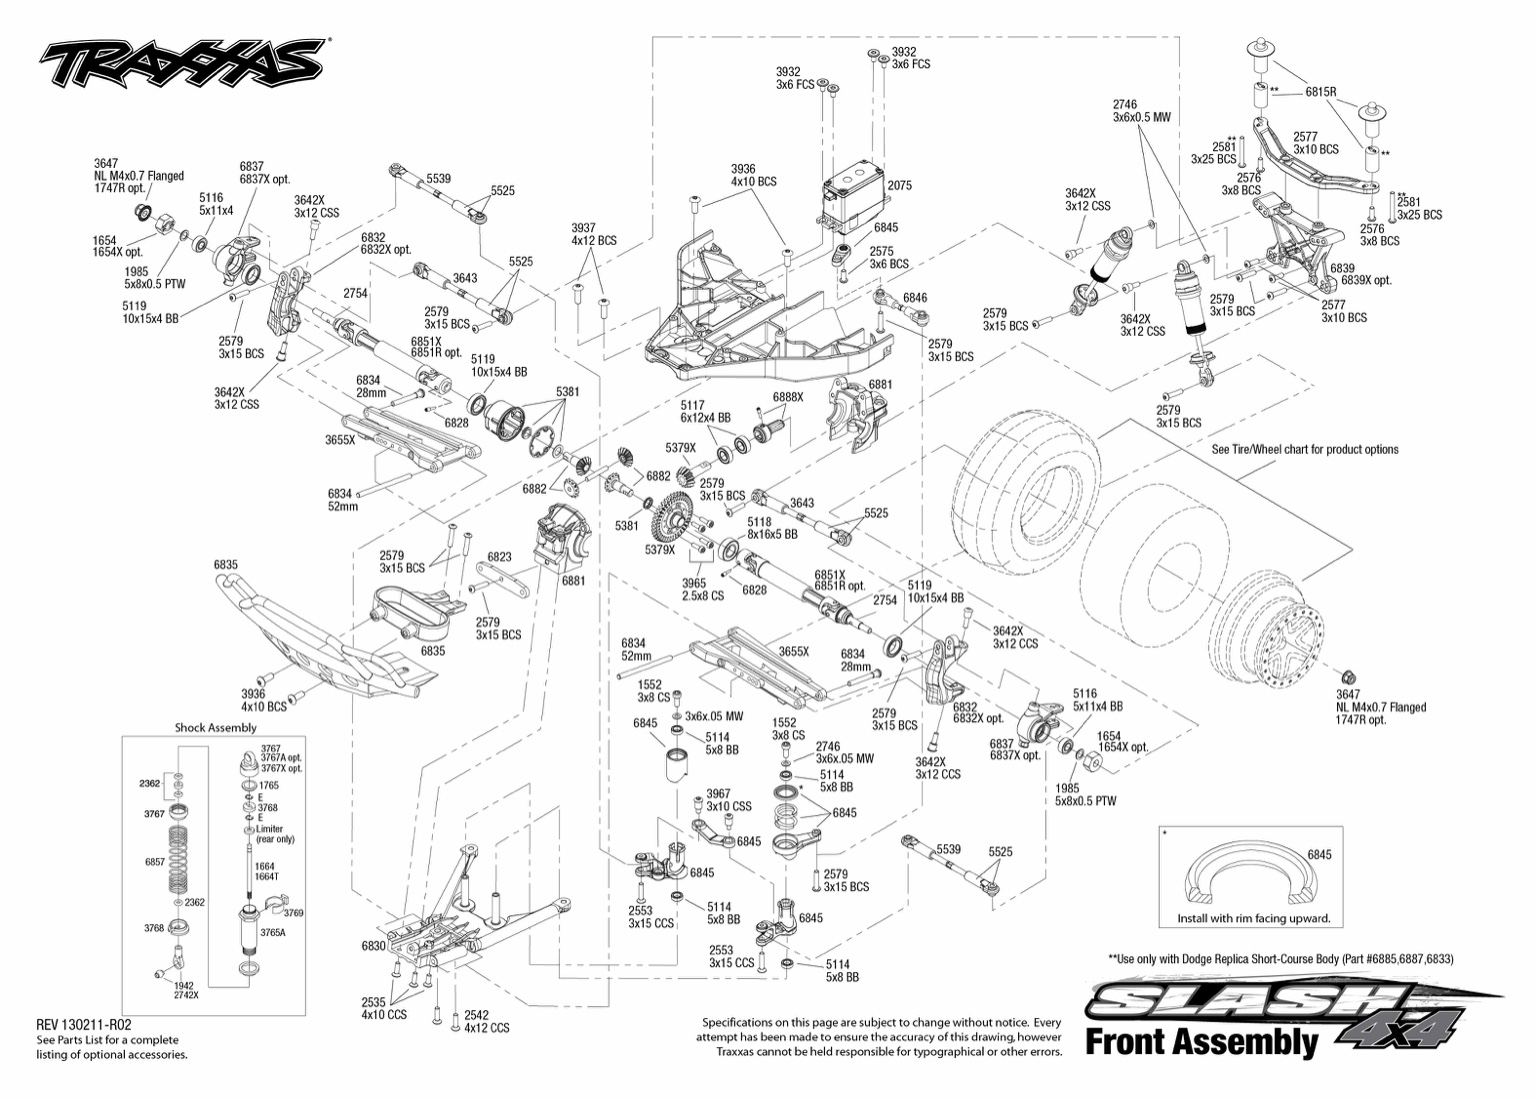 Gearing Chart Traxxas Slash Speed Stampede 4x4 Vxl Diagram Wiring Diagrams For Dummies Looking Some Info Rh Forums Com Parts